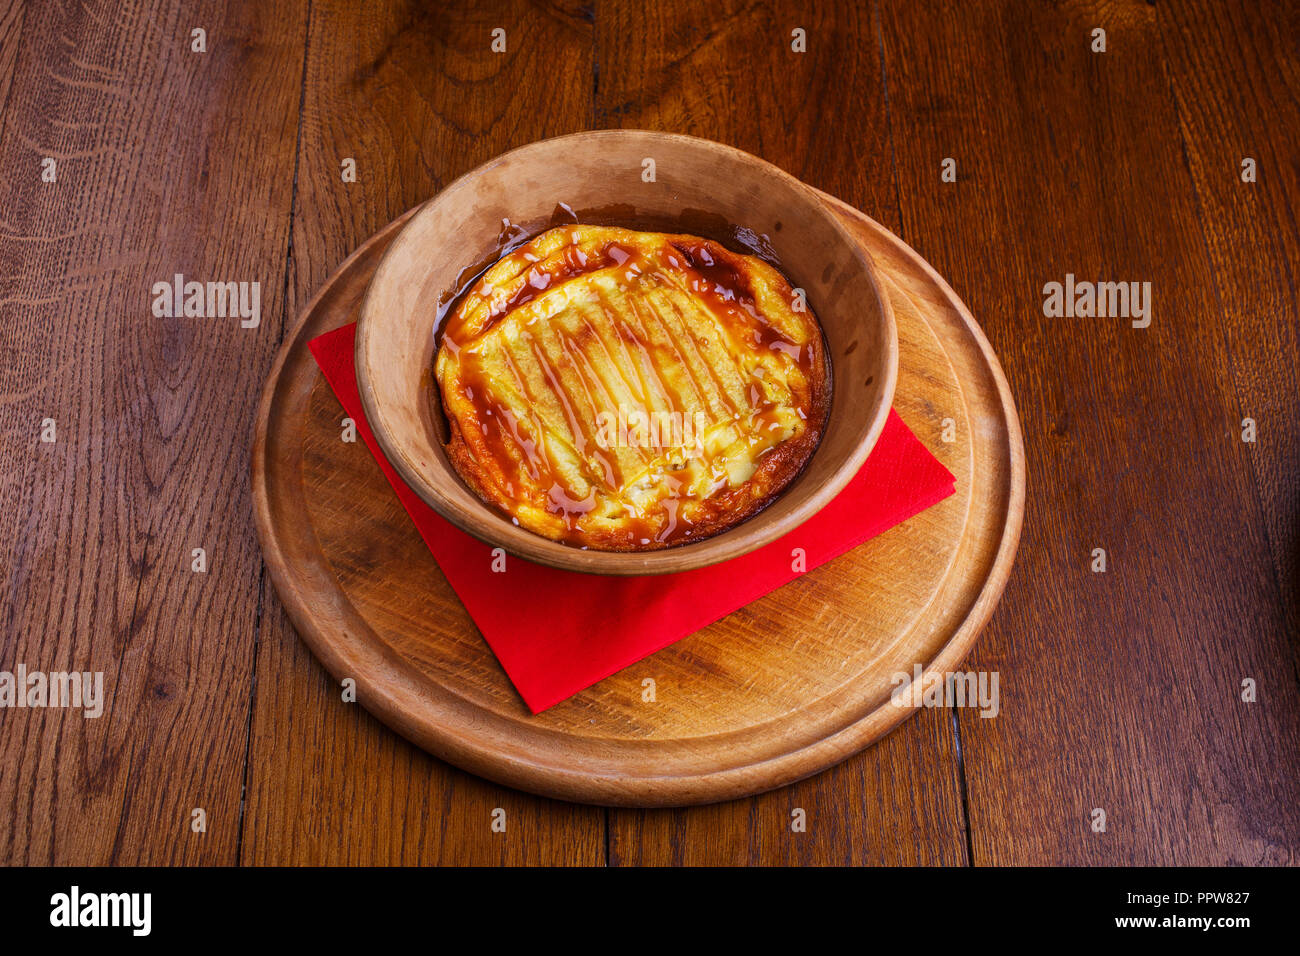 Sweet rice pudding baked in pottery. Sweet dish at the restaurant. Pudding with caramel - Stock Image